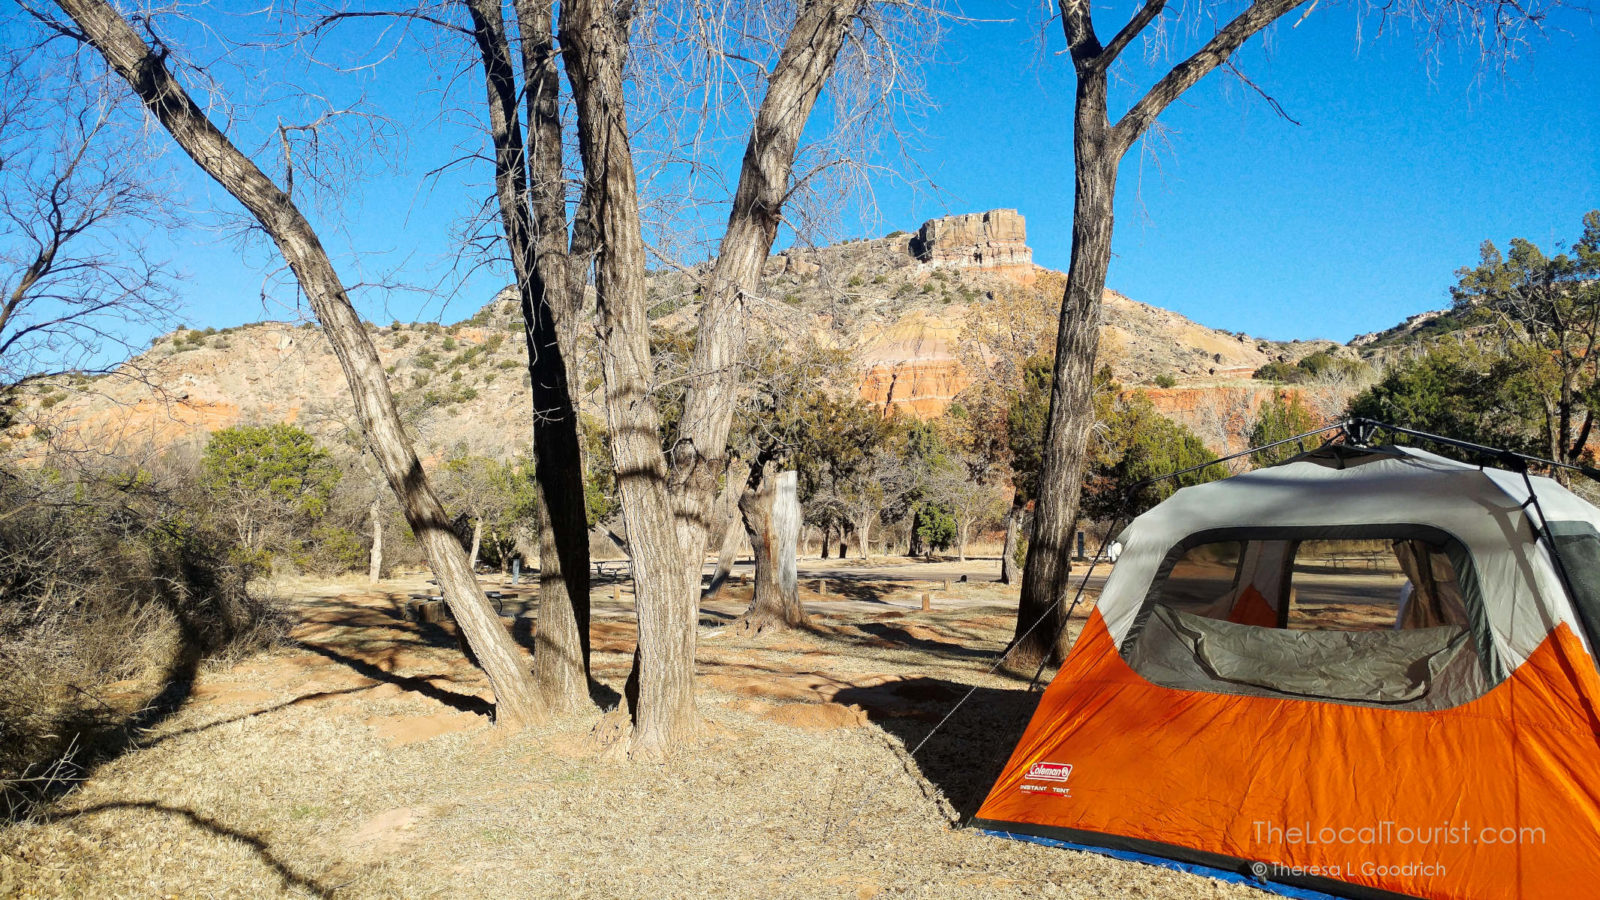 Tent in Hackberry Campground in Palo Duro Canyon State Park